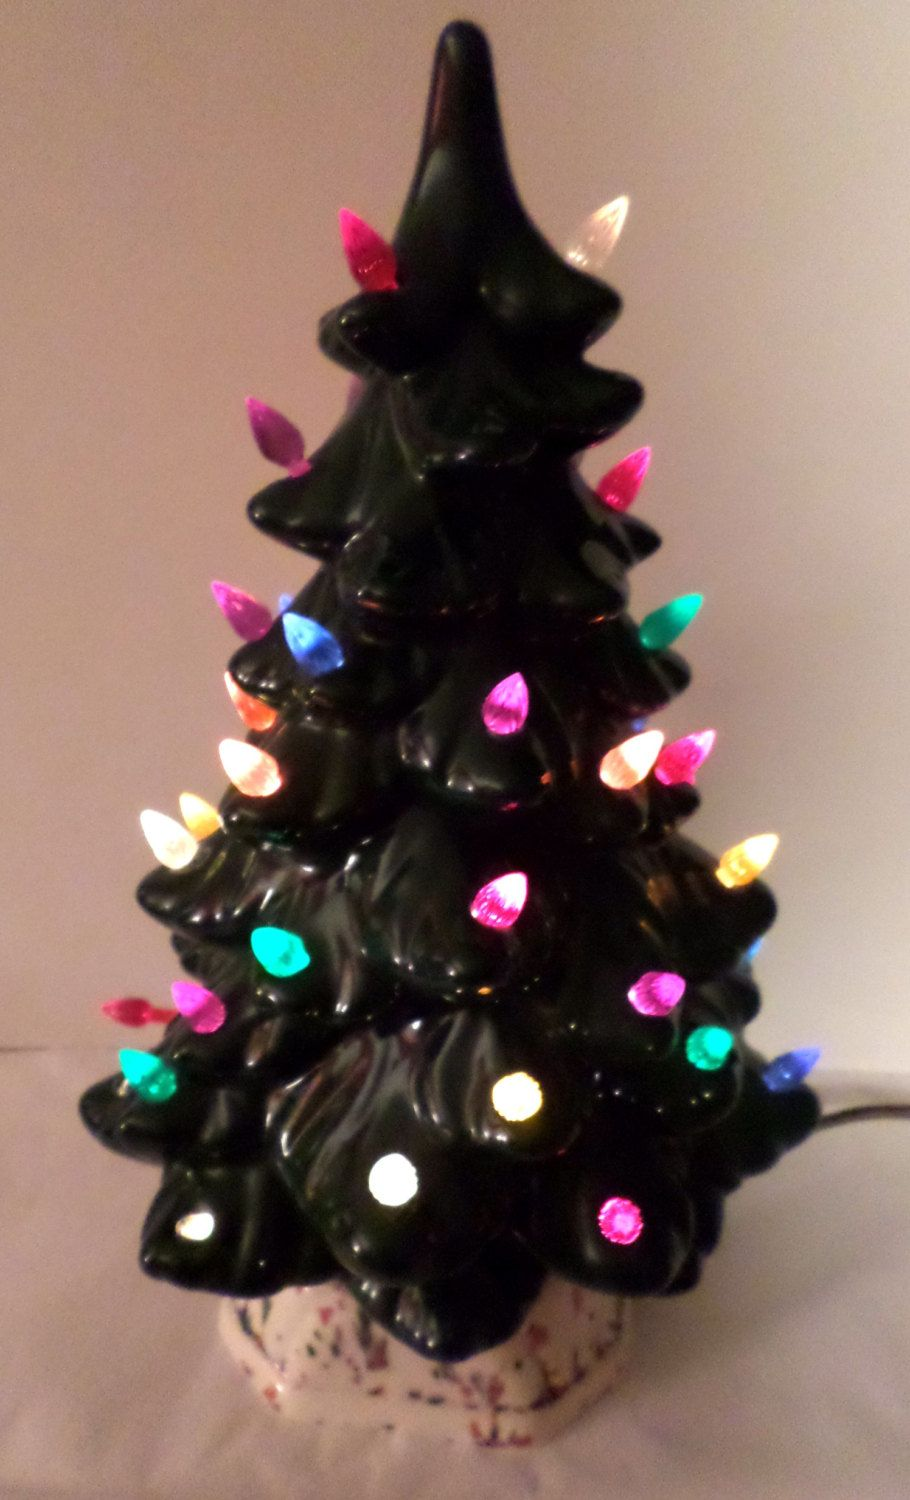 1970s tree 11 green ceramic tree light up christmas